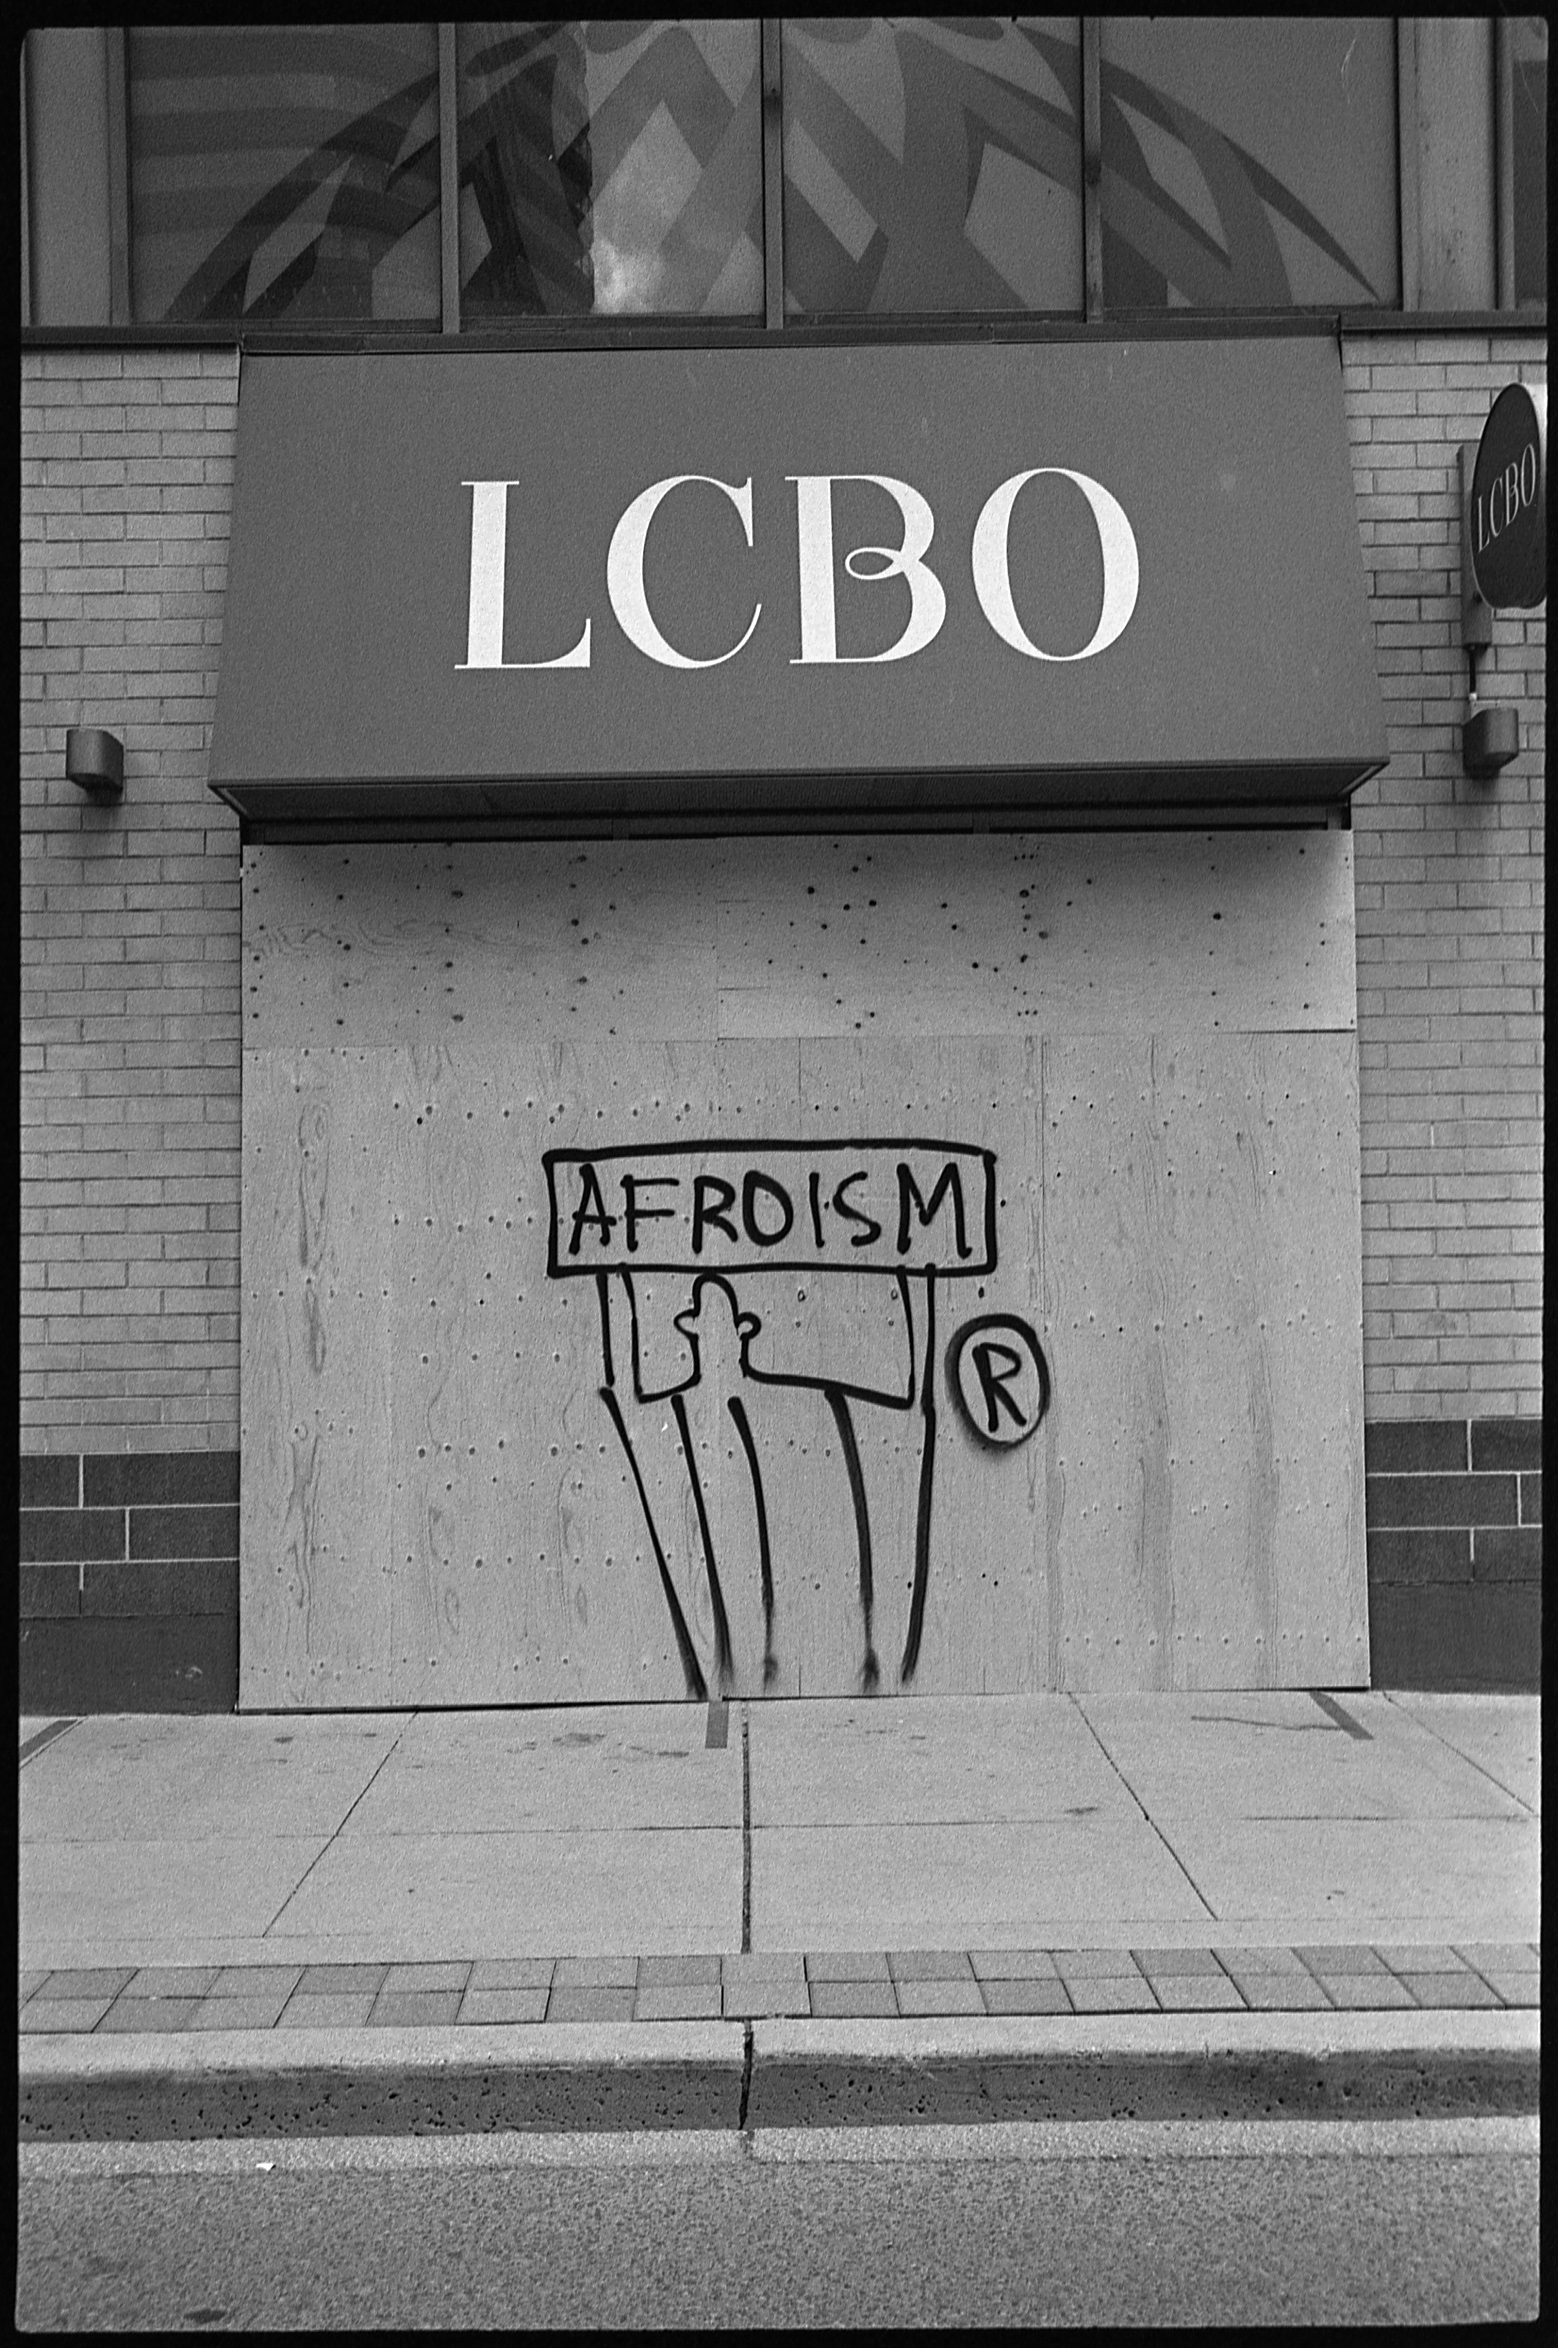 Bidemi Oloyede, Afroism, Toronto, June 2020, from the series Not Another Black Life. Courtesy of the artist